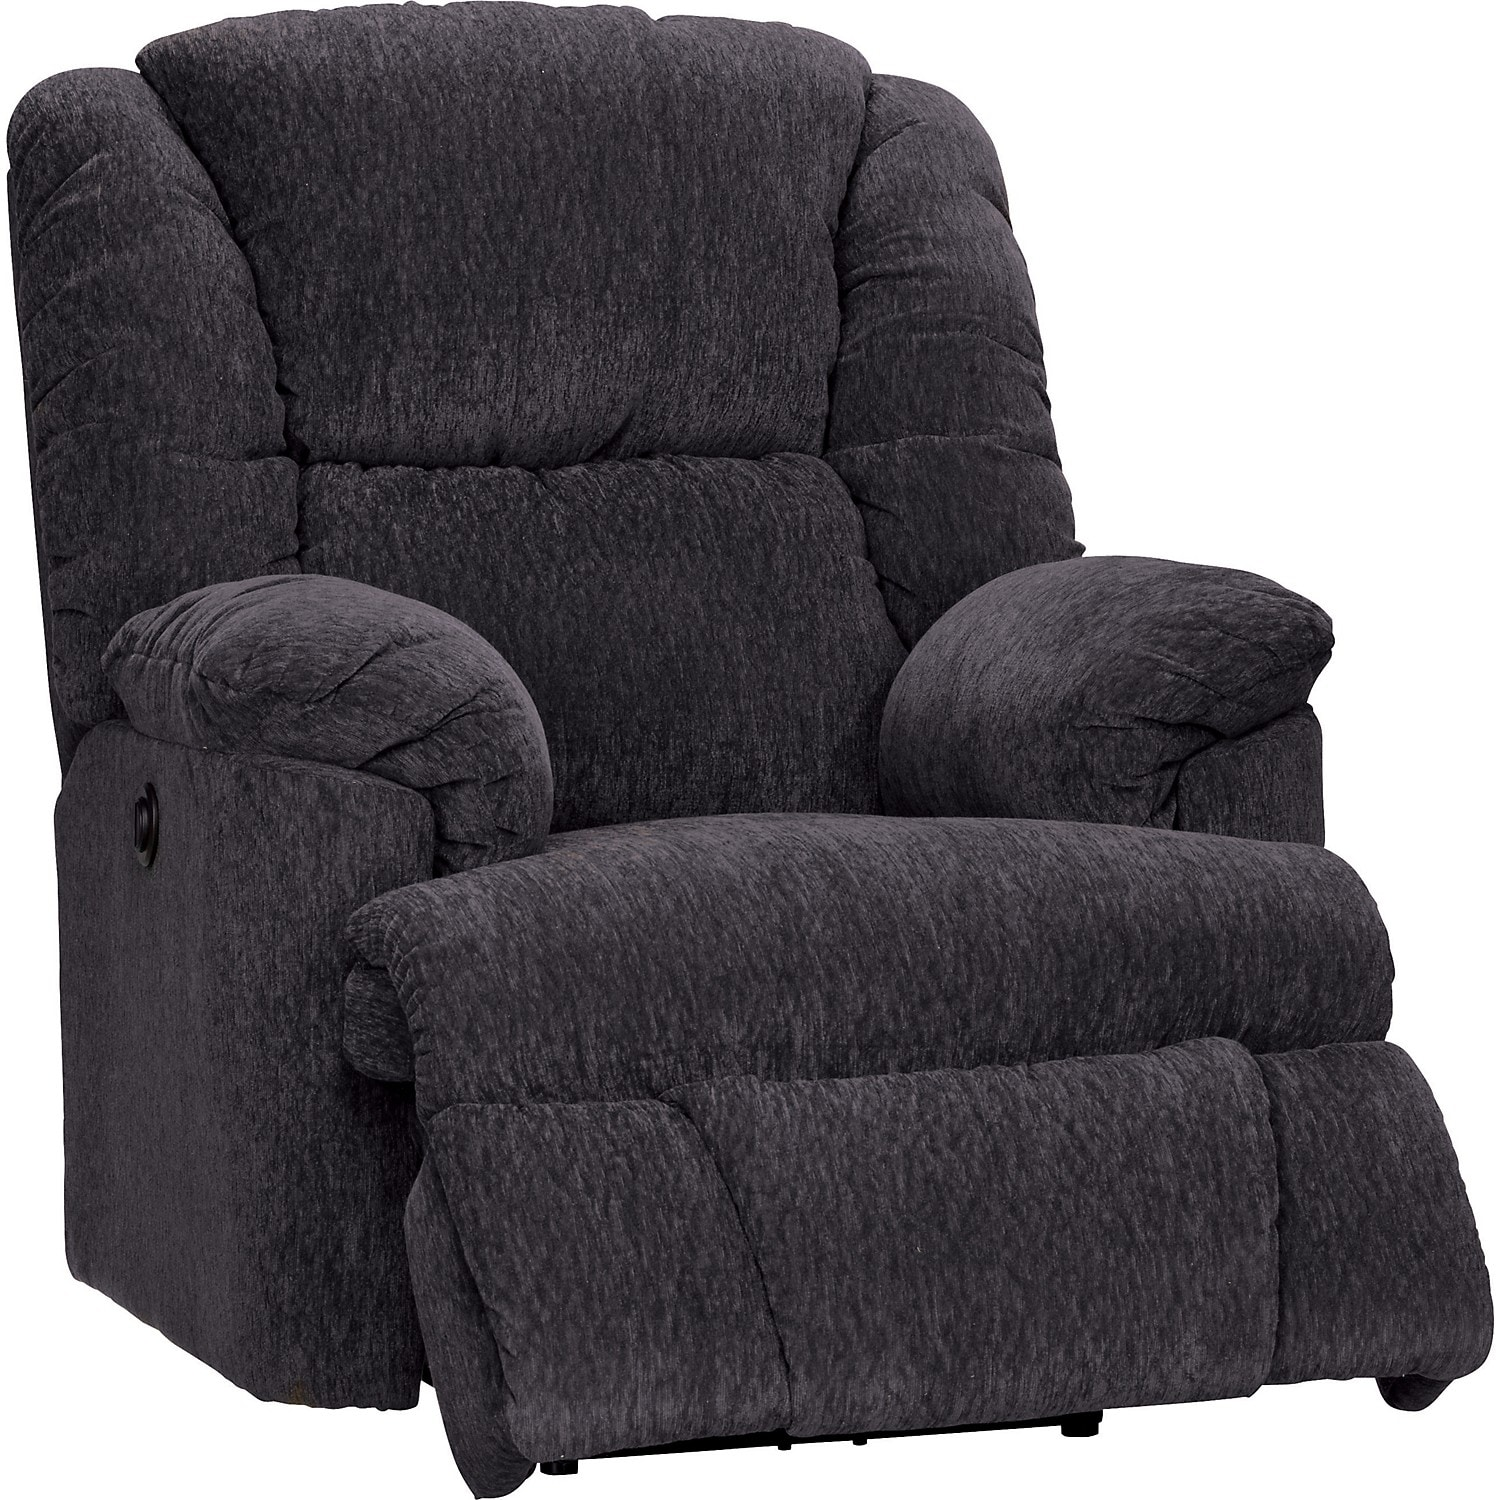 Bmaxx Grey Chenille Power Recliner